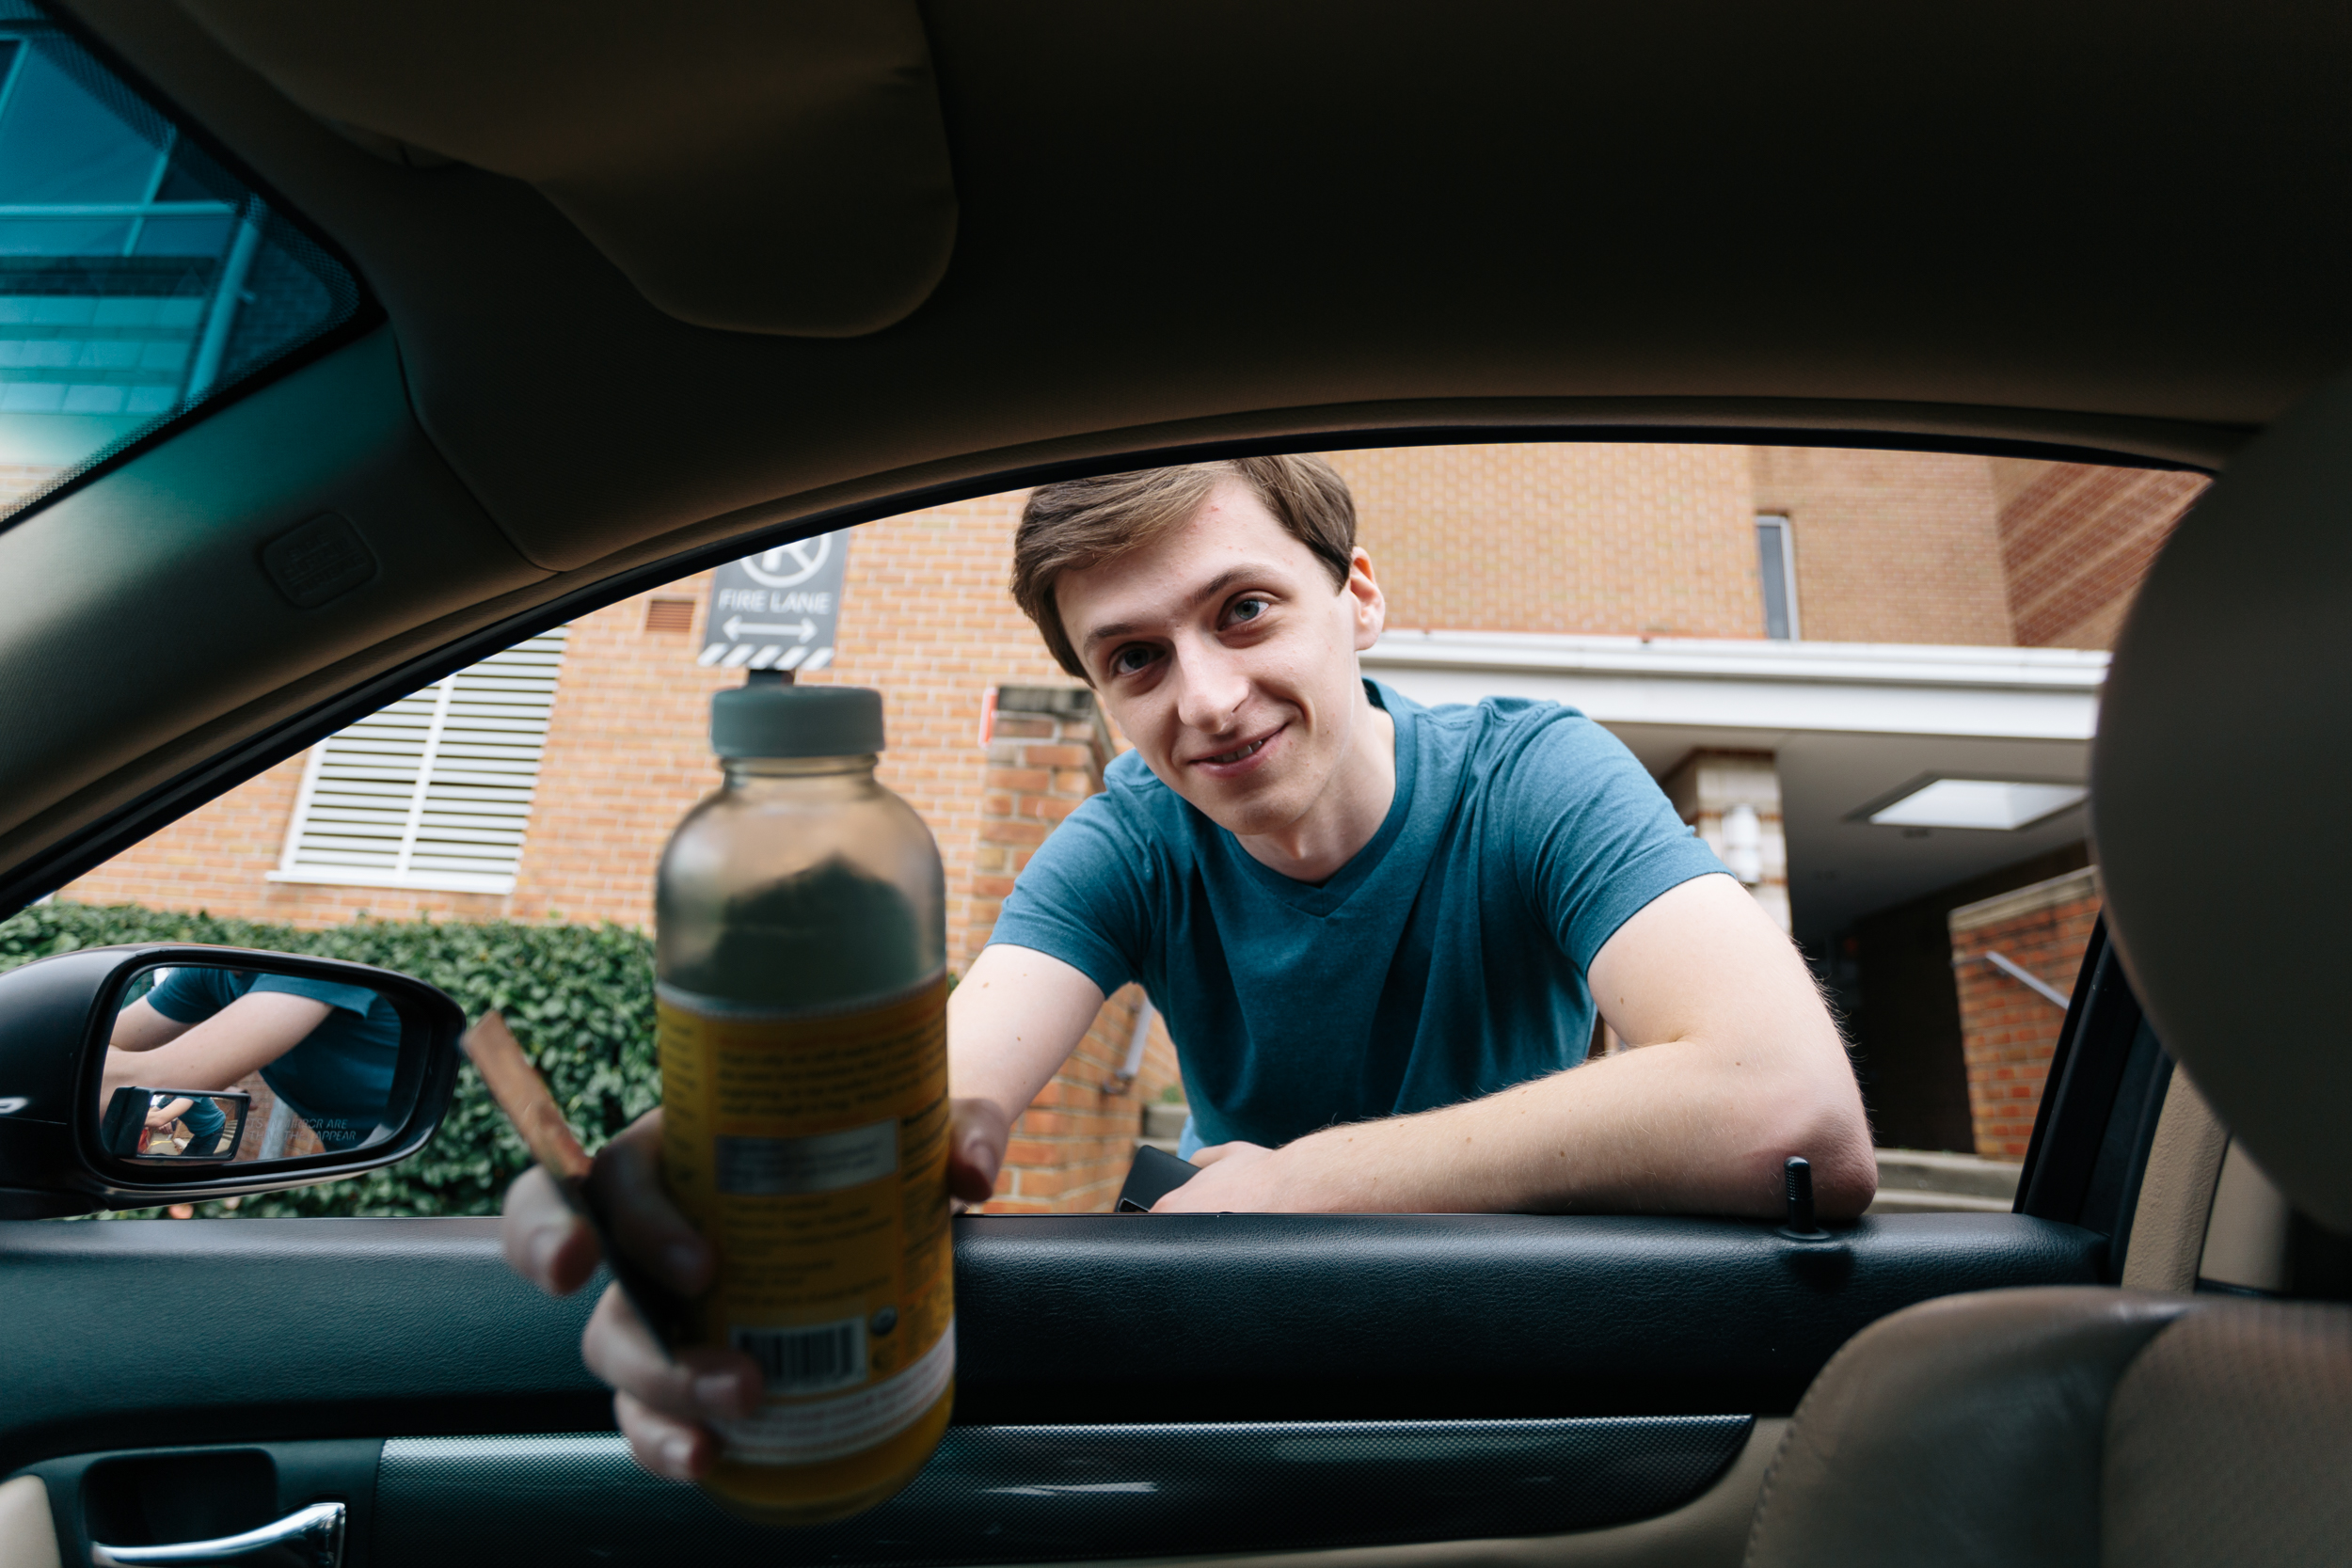 My roommate, Sonny, with Emily's drink. Almost forgot to leave home with out it.